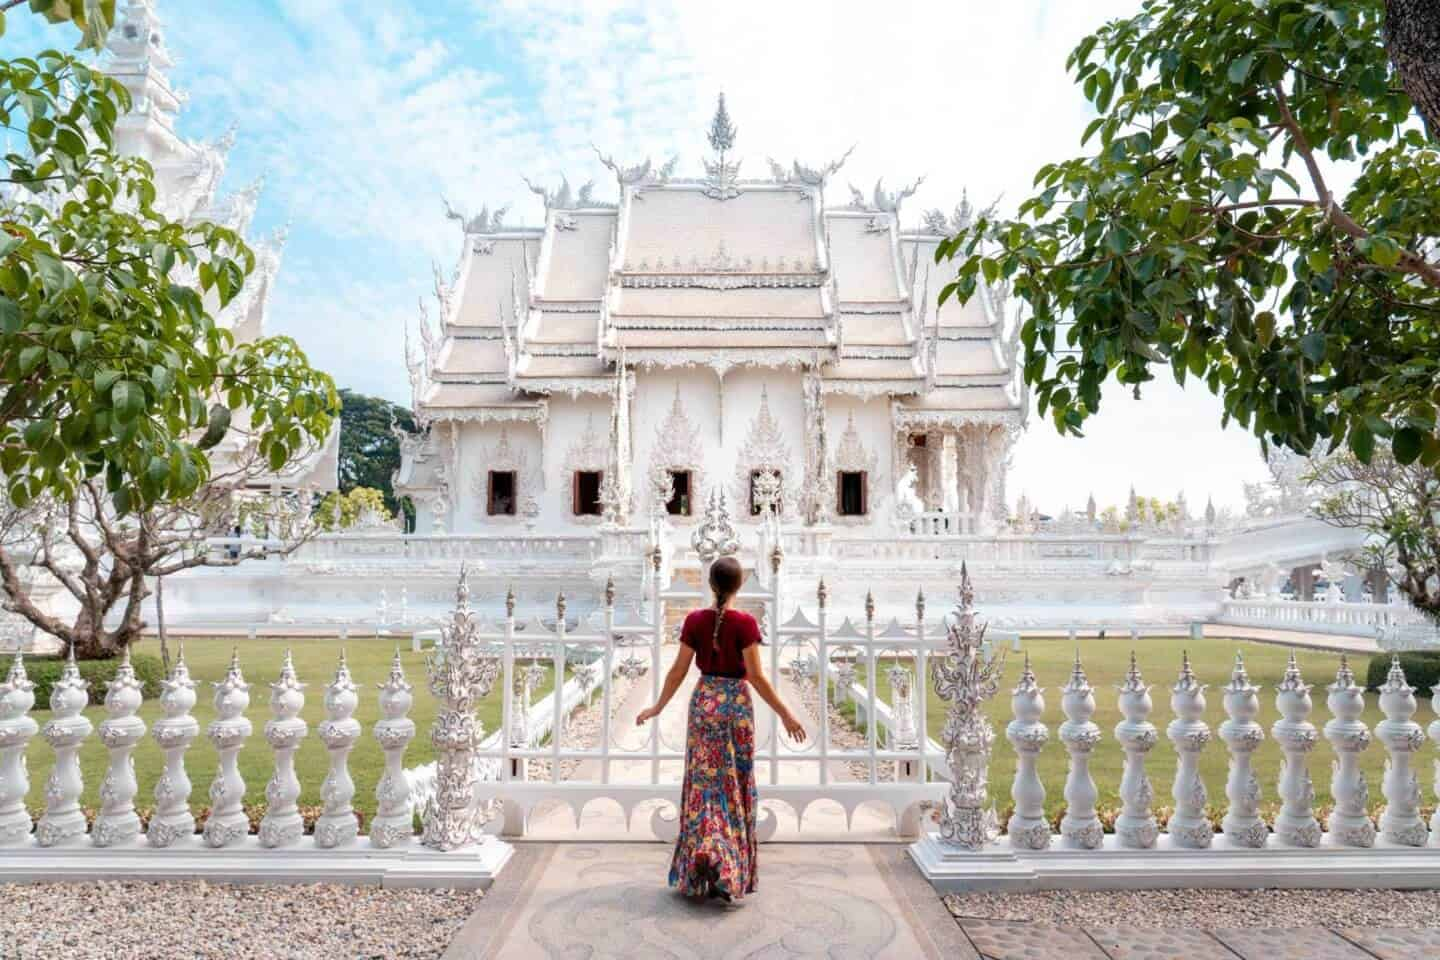 A seldom-seen side view of the White Temple in Chiang Rai.